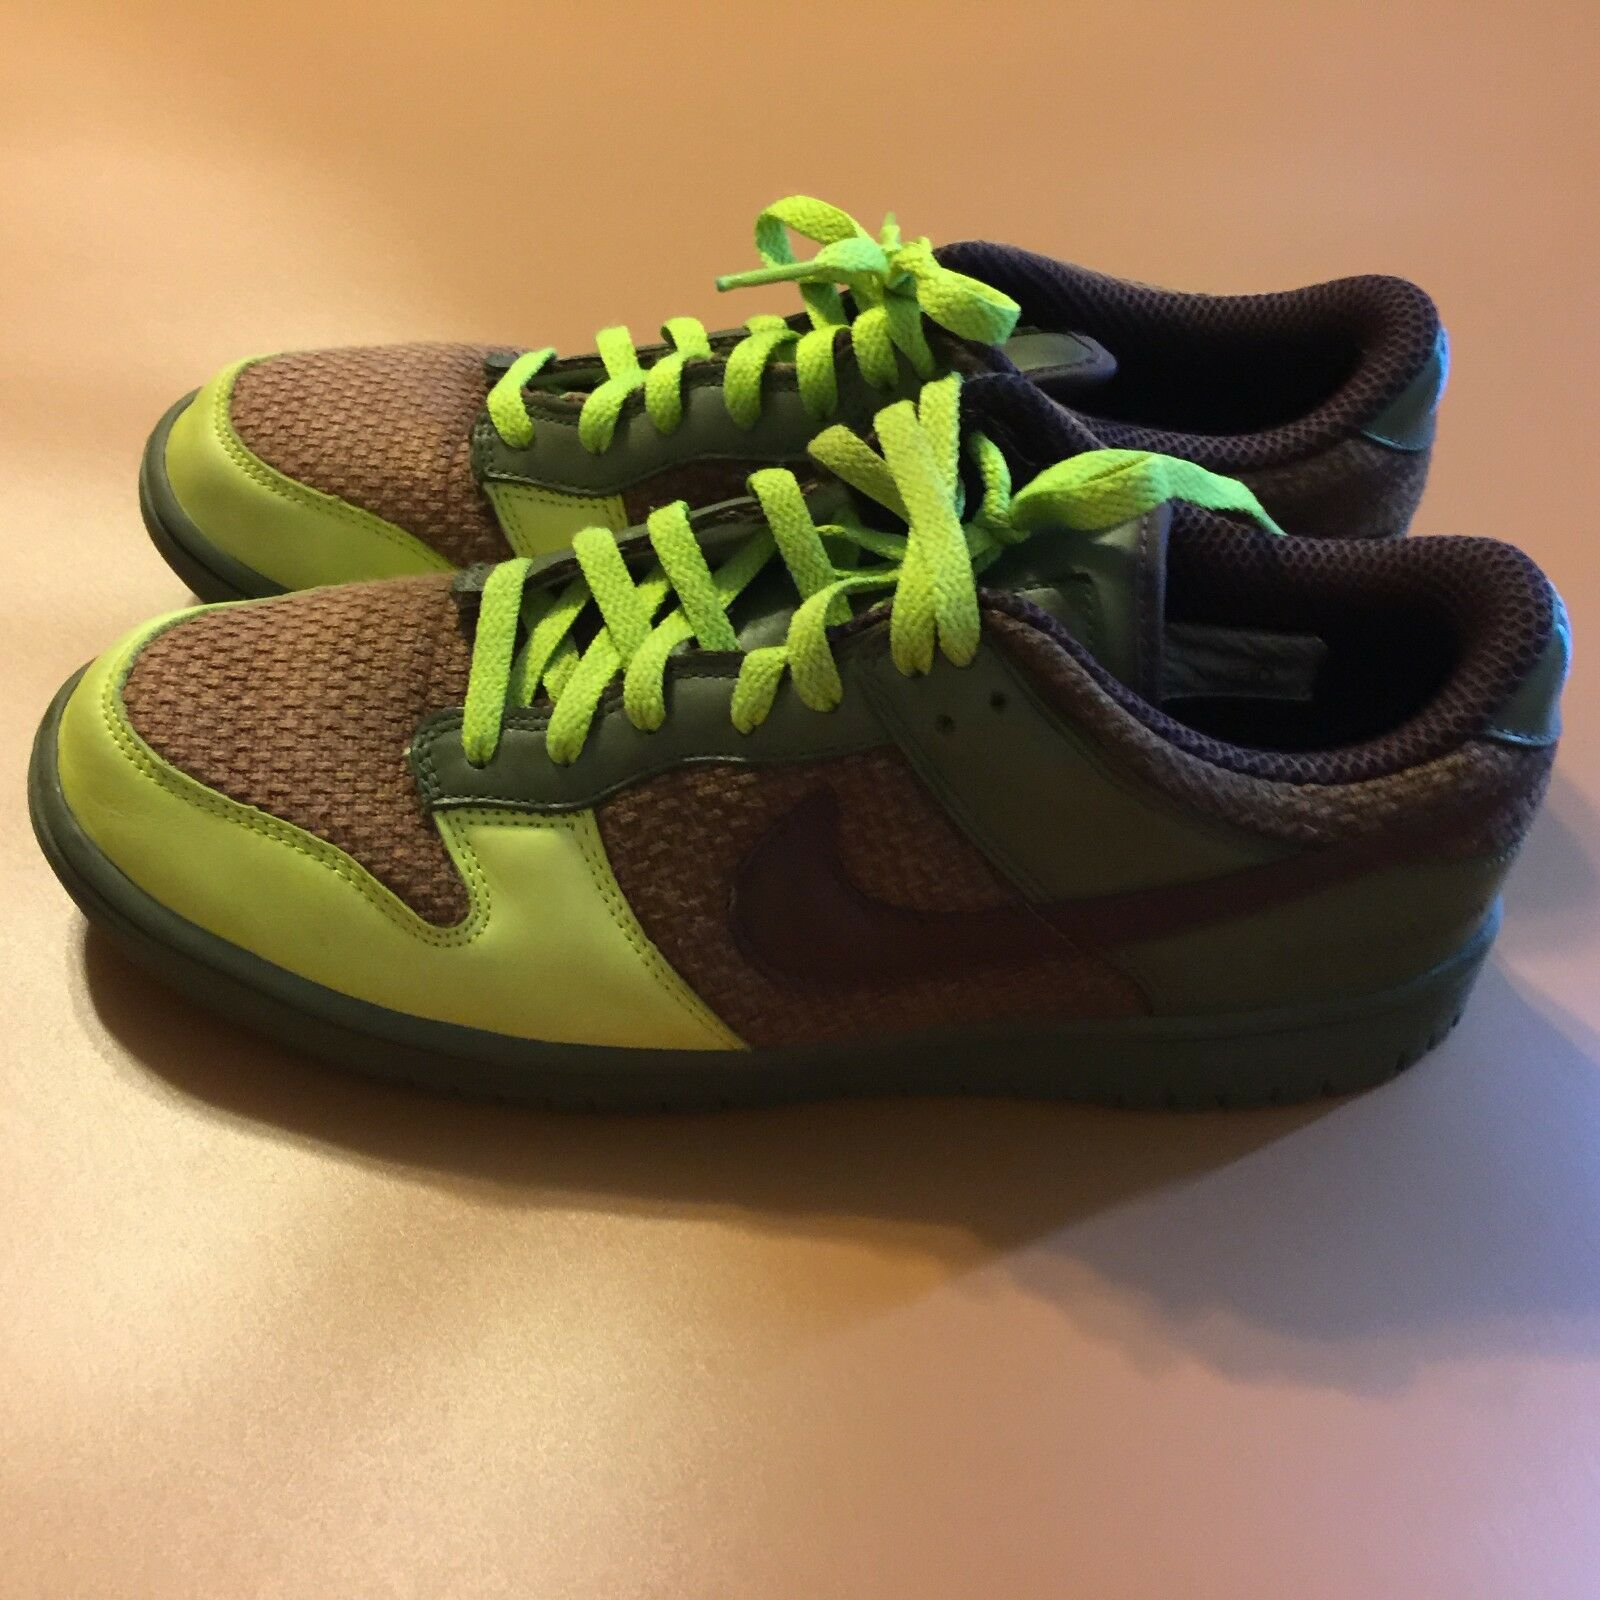 2007 Nike ID Green Brown Sneakers Shoes ILOVEUSAILOR Inscription Mens SZ 11.5